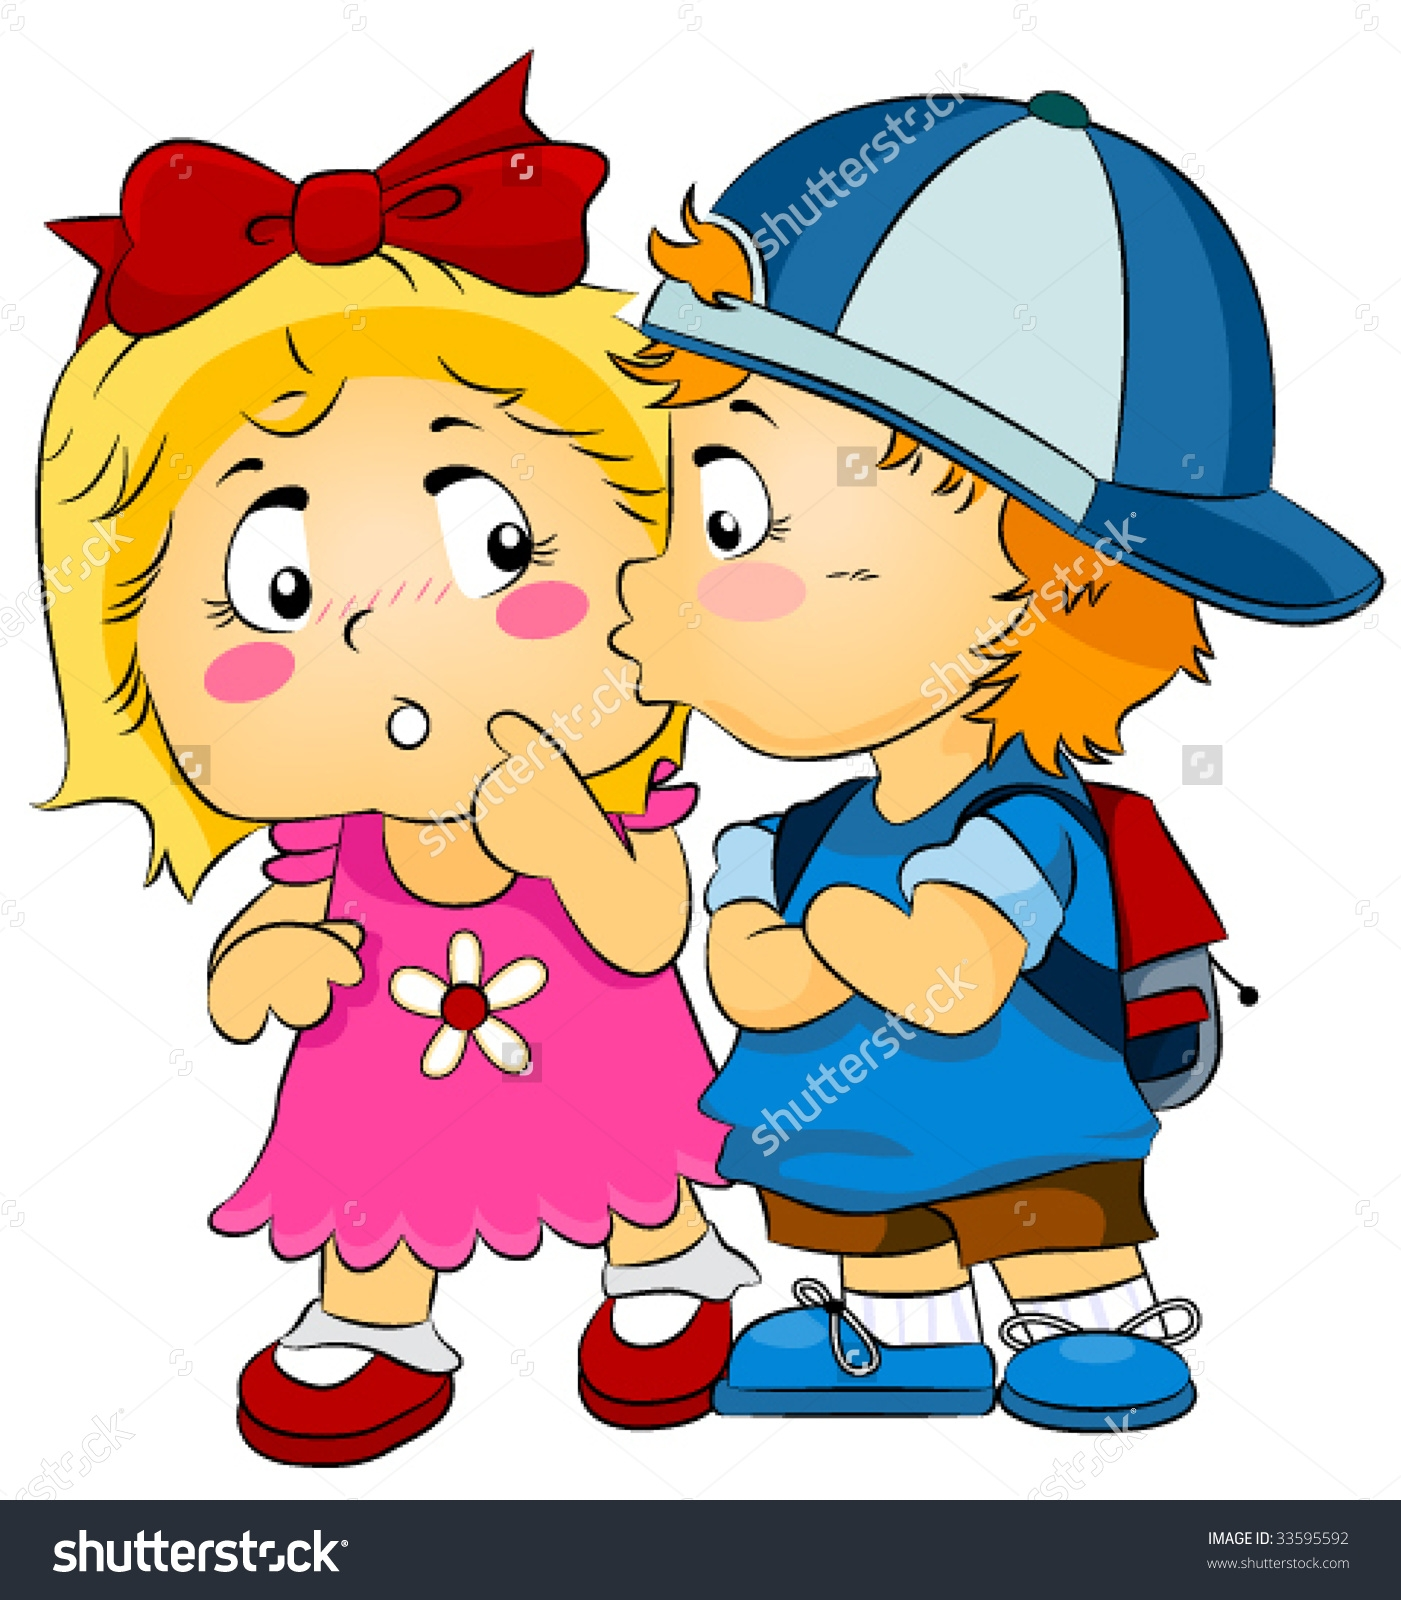 Clipart Of Boy And Girl Kissing.